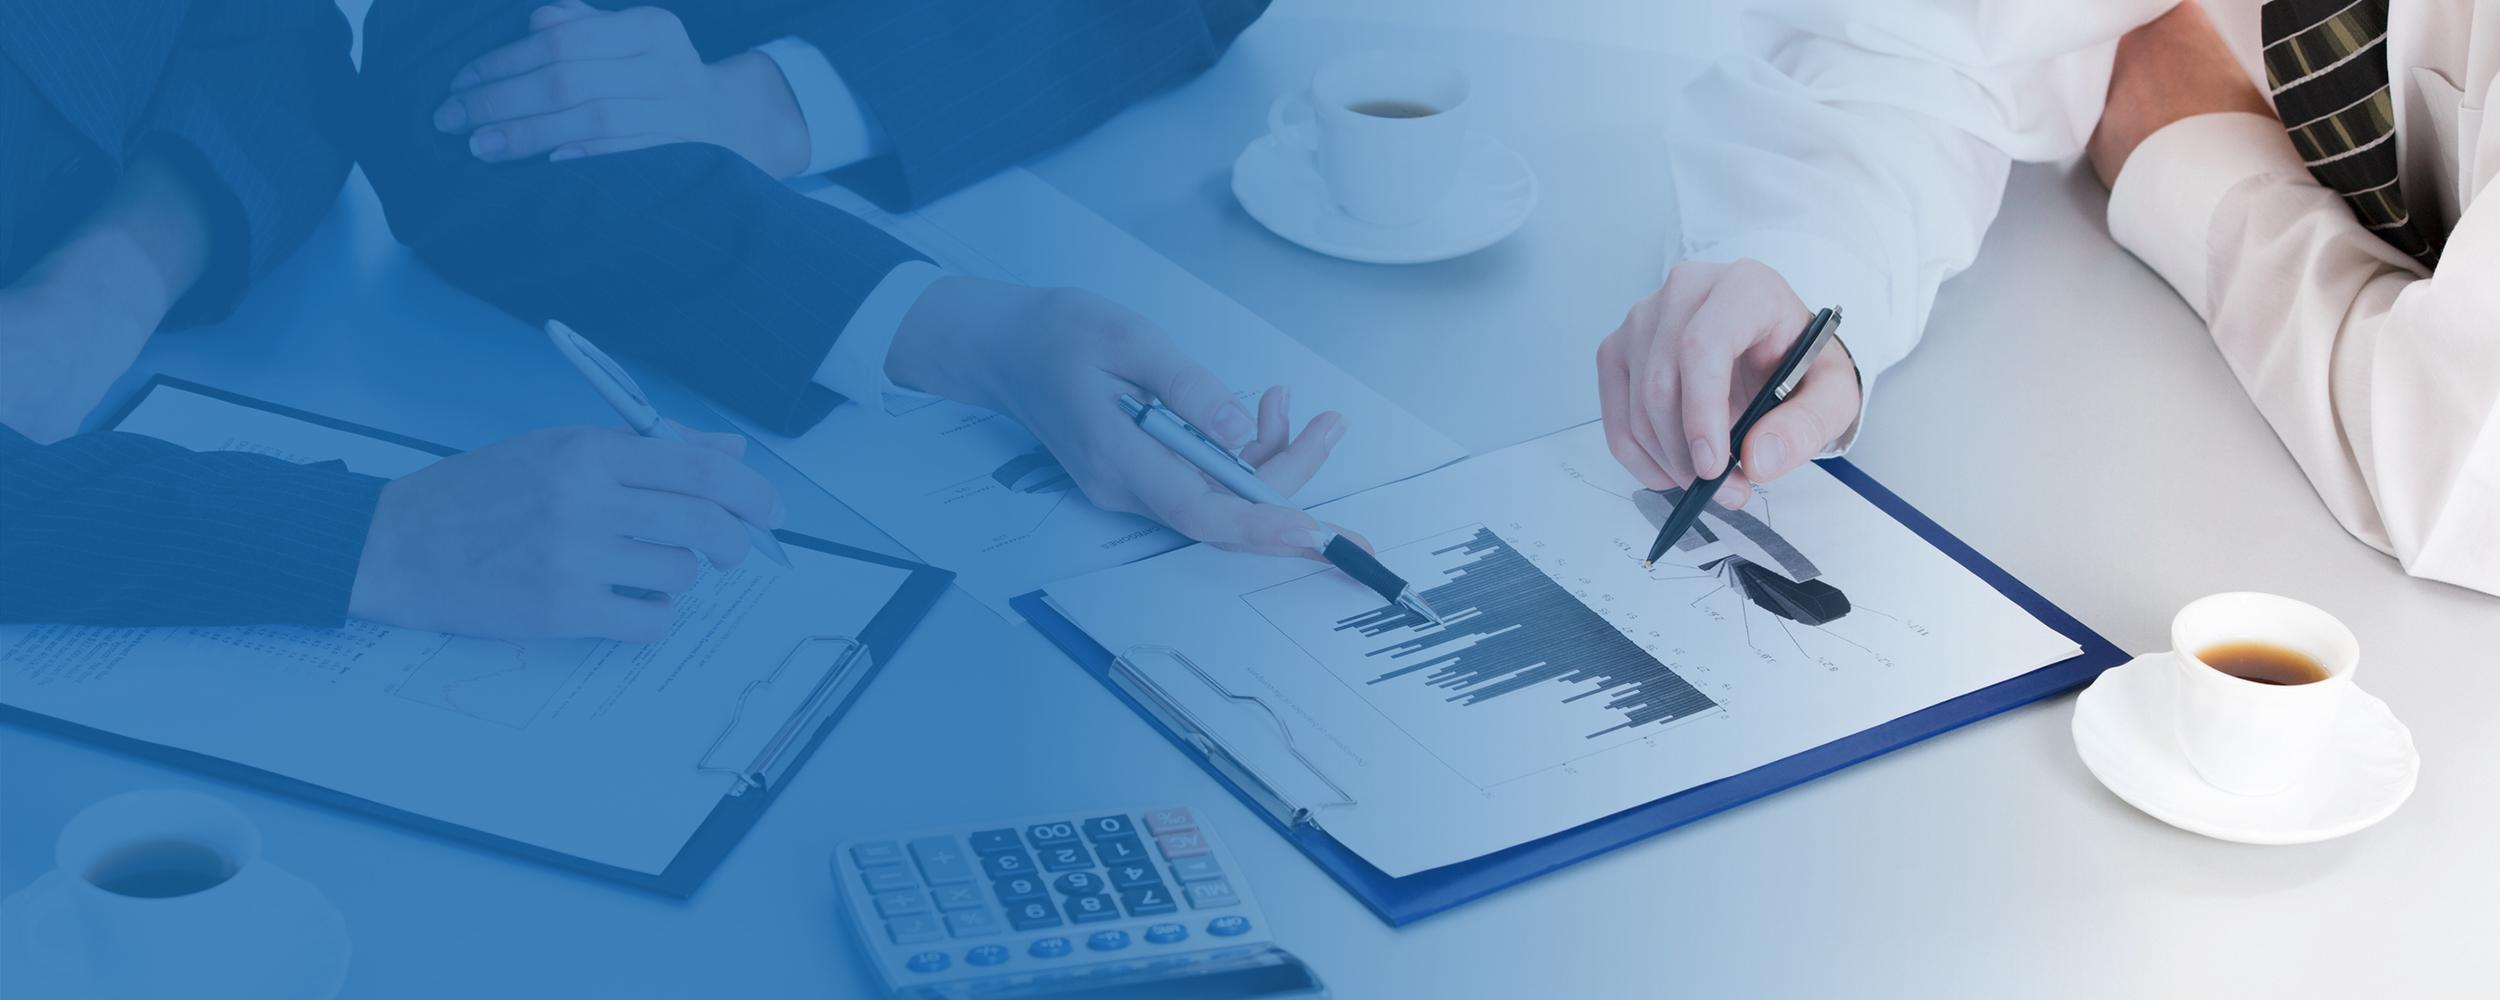 course financial accountingn504 project Acct 504 (fi504 - accounting and finance managerial use and analysis) entire course.